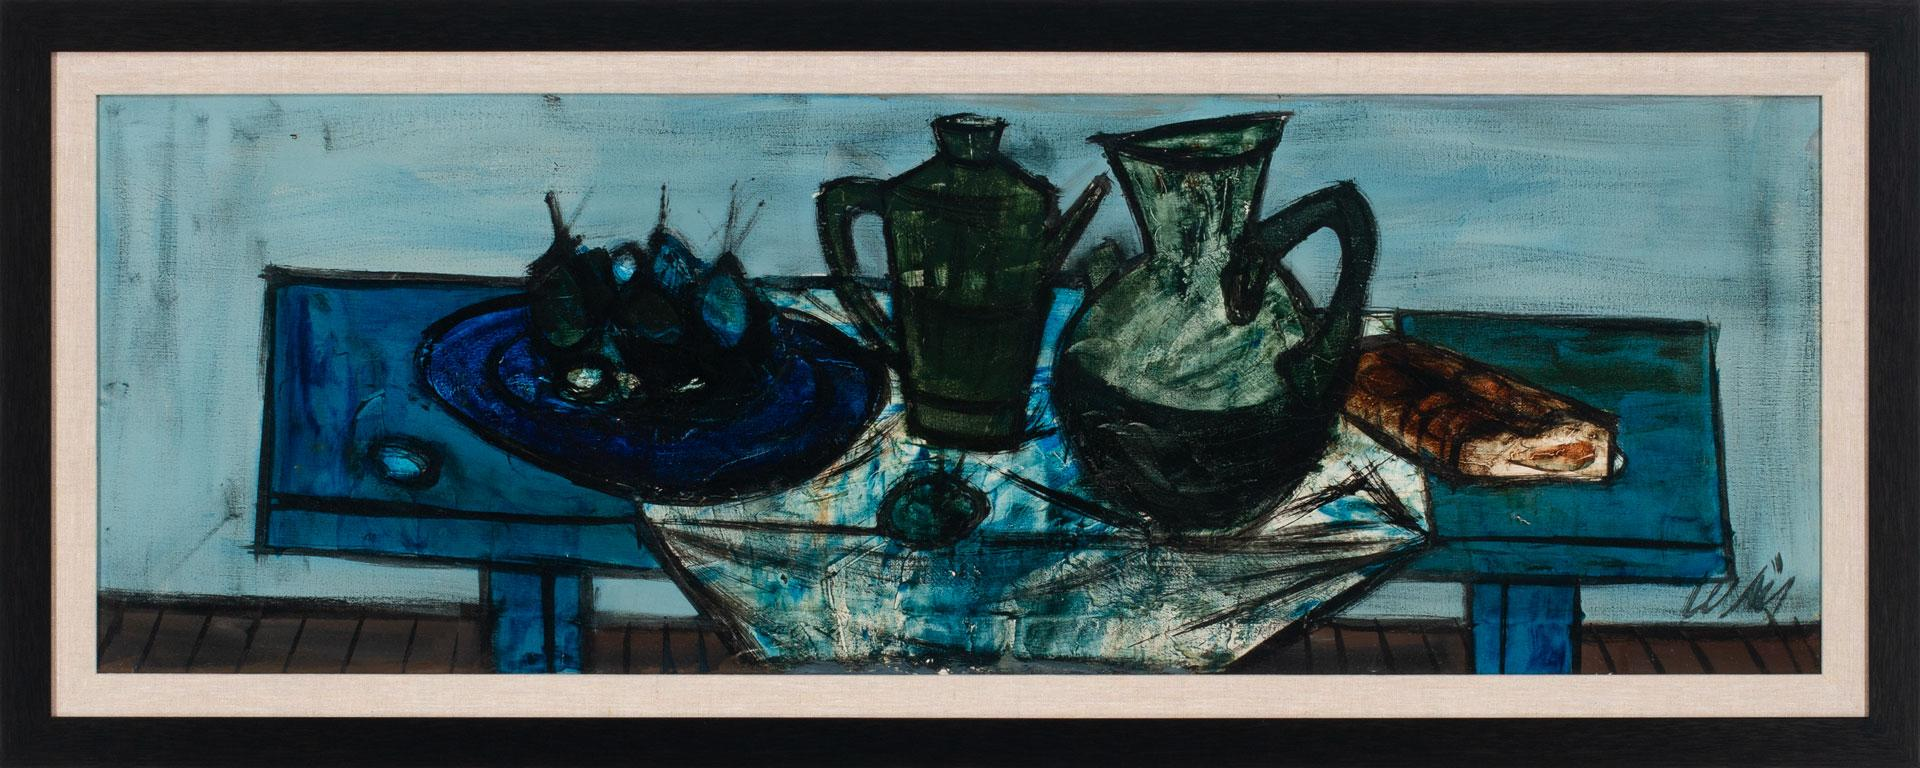 [Table Bleue] Abstract Still Life Oil Painting by Charles Levier, Framed